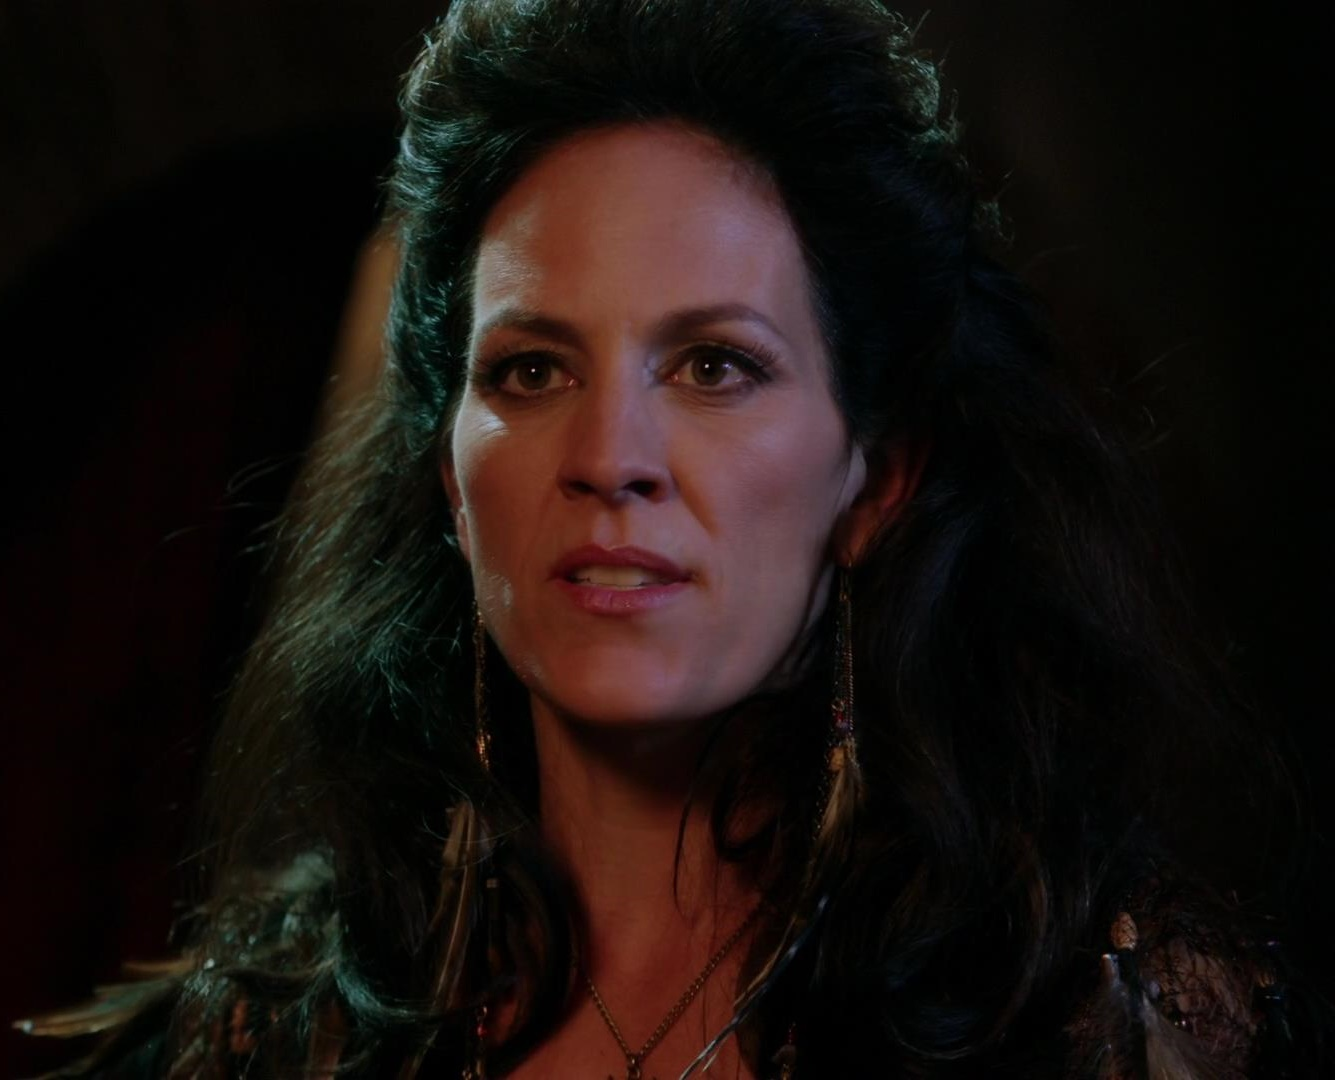 Anita (Once Upon a Time)